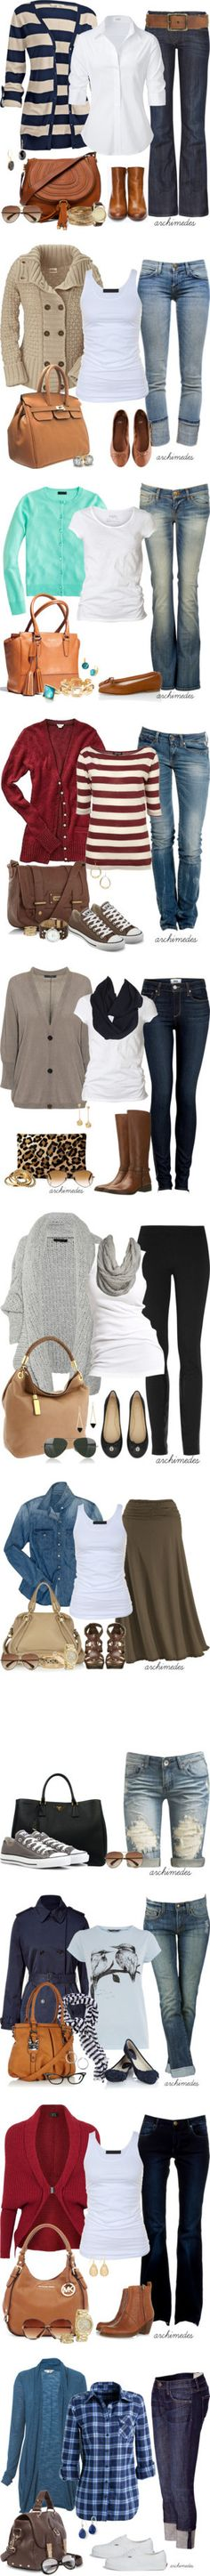 So many cute Fall outfits.